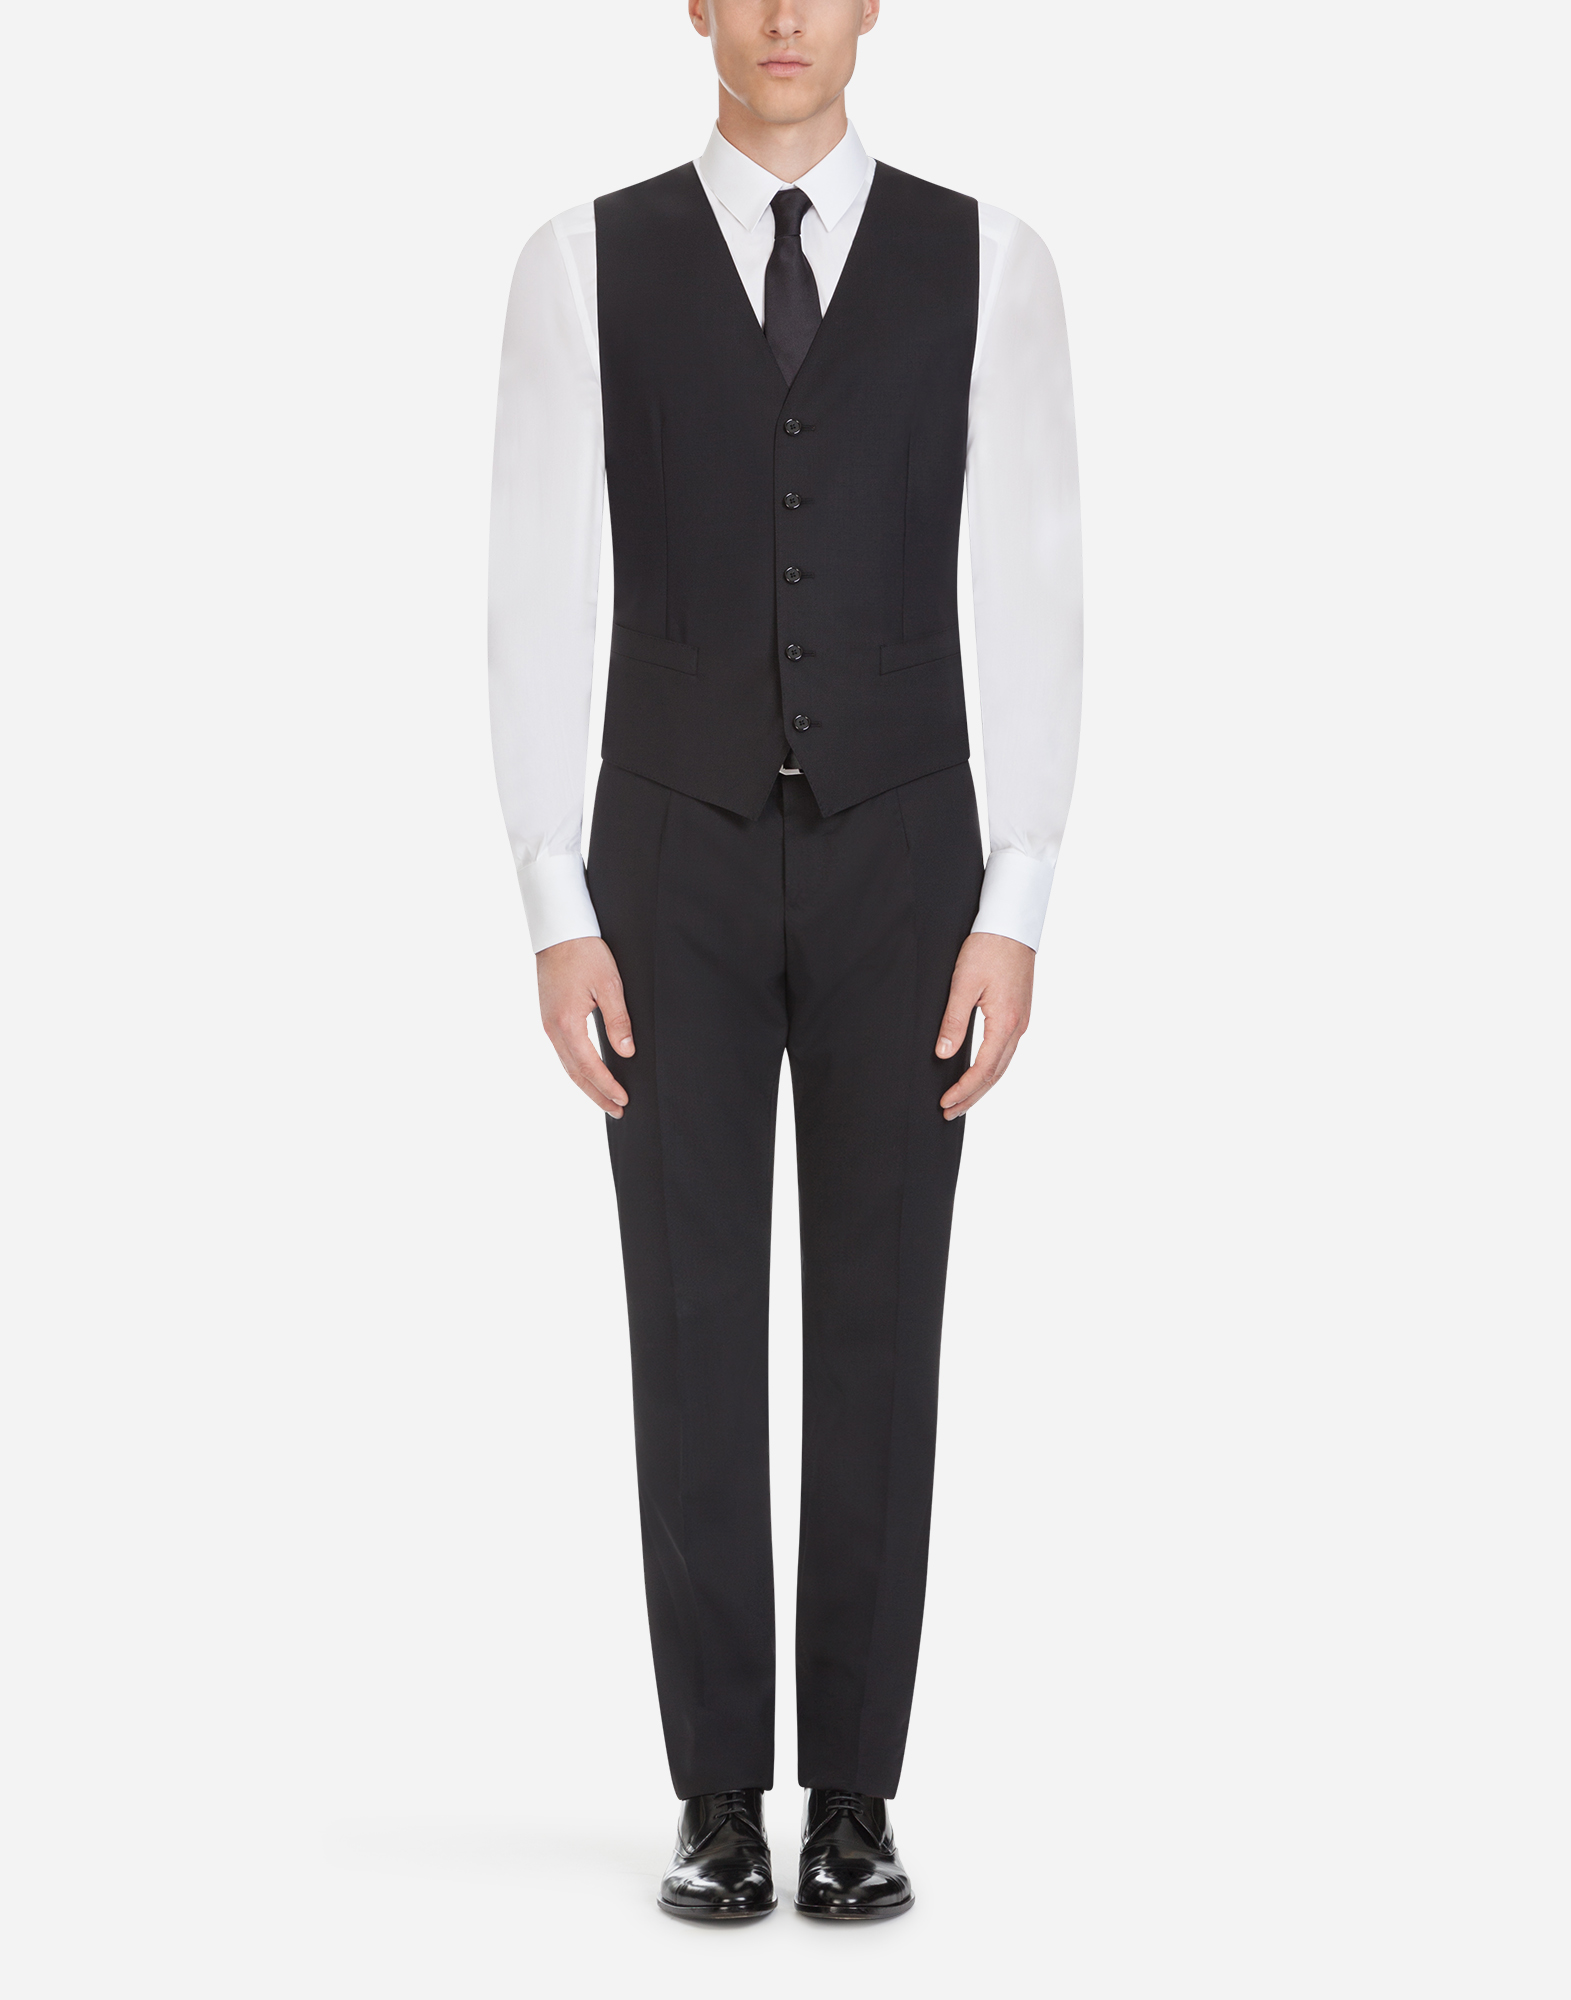 Dolce&Gabbana TROUSERS IN STRETCH WOOL